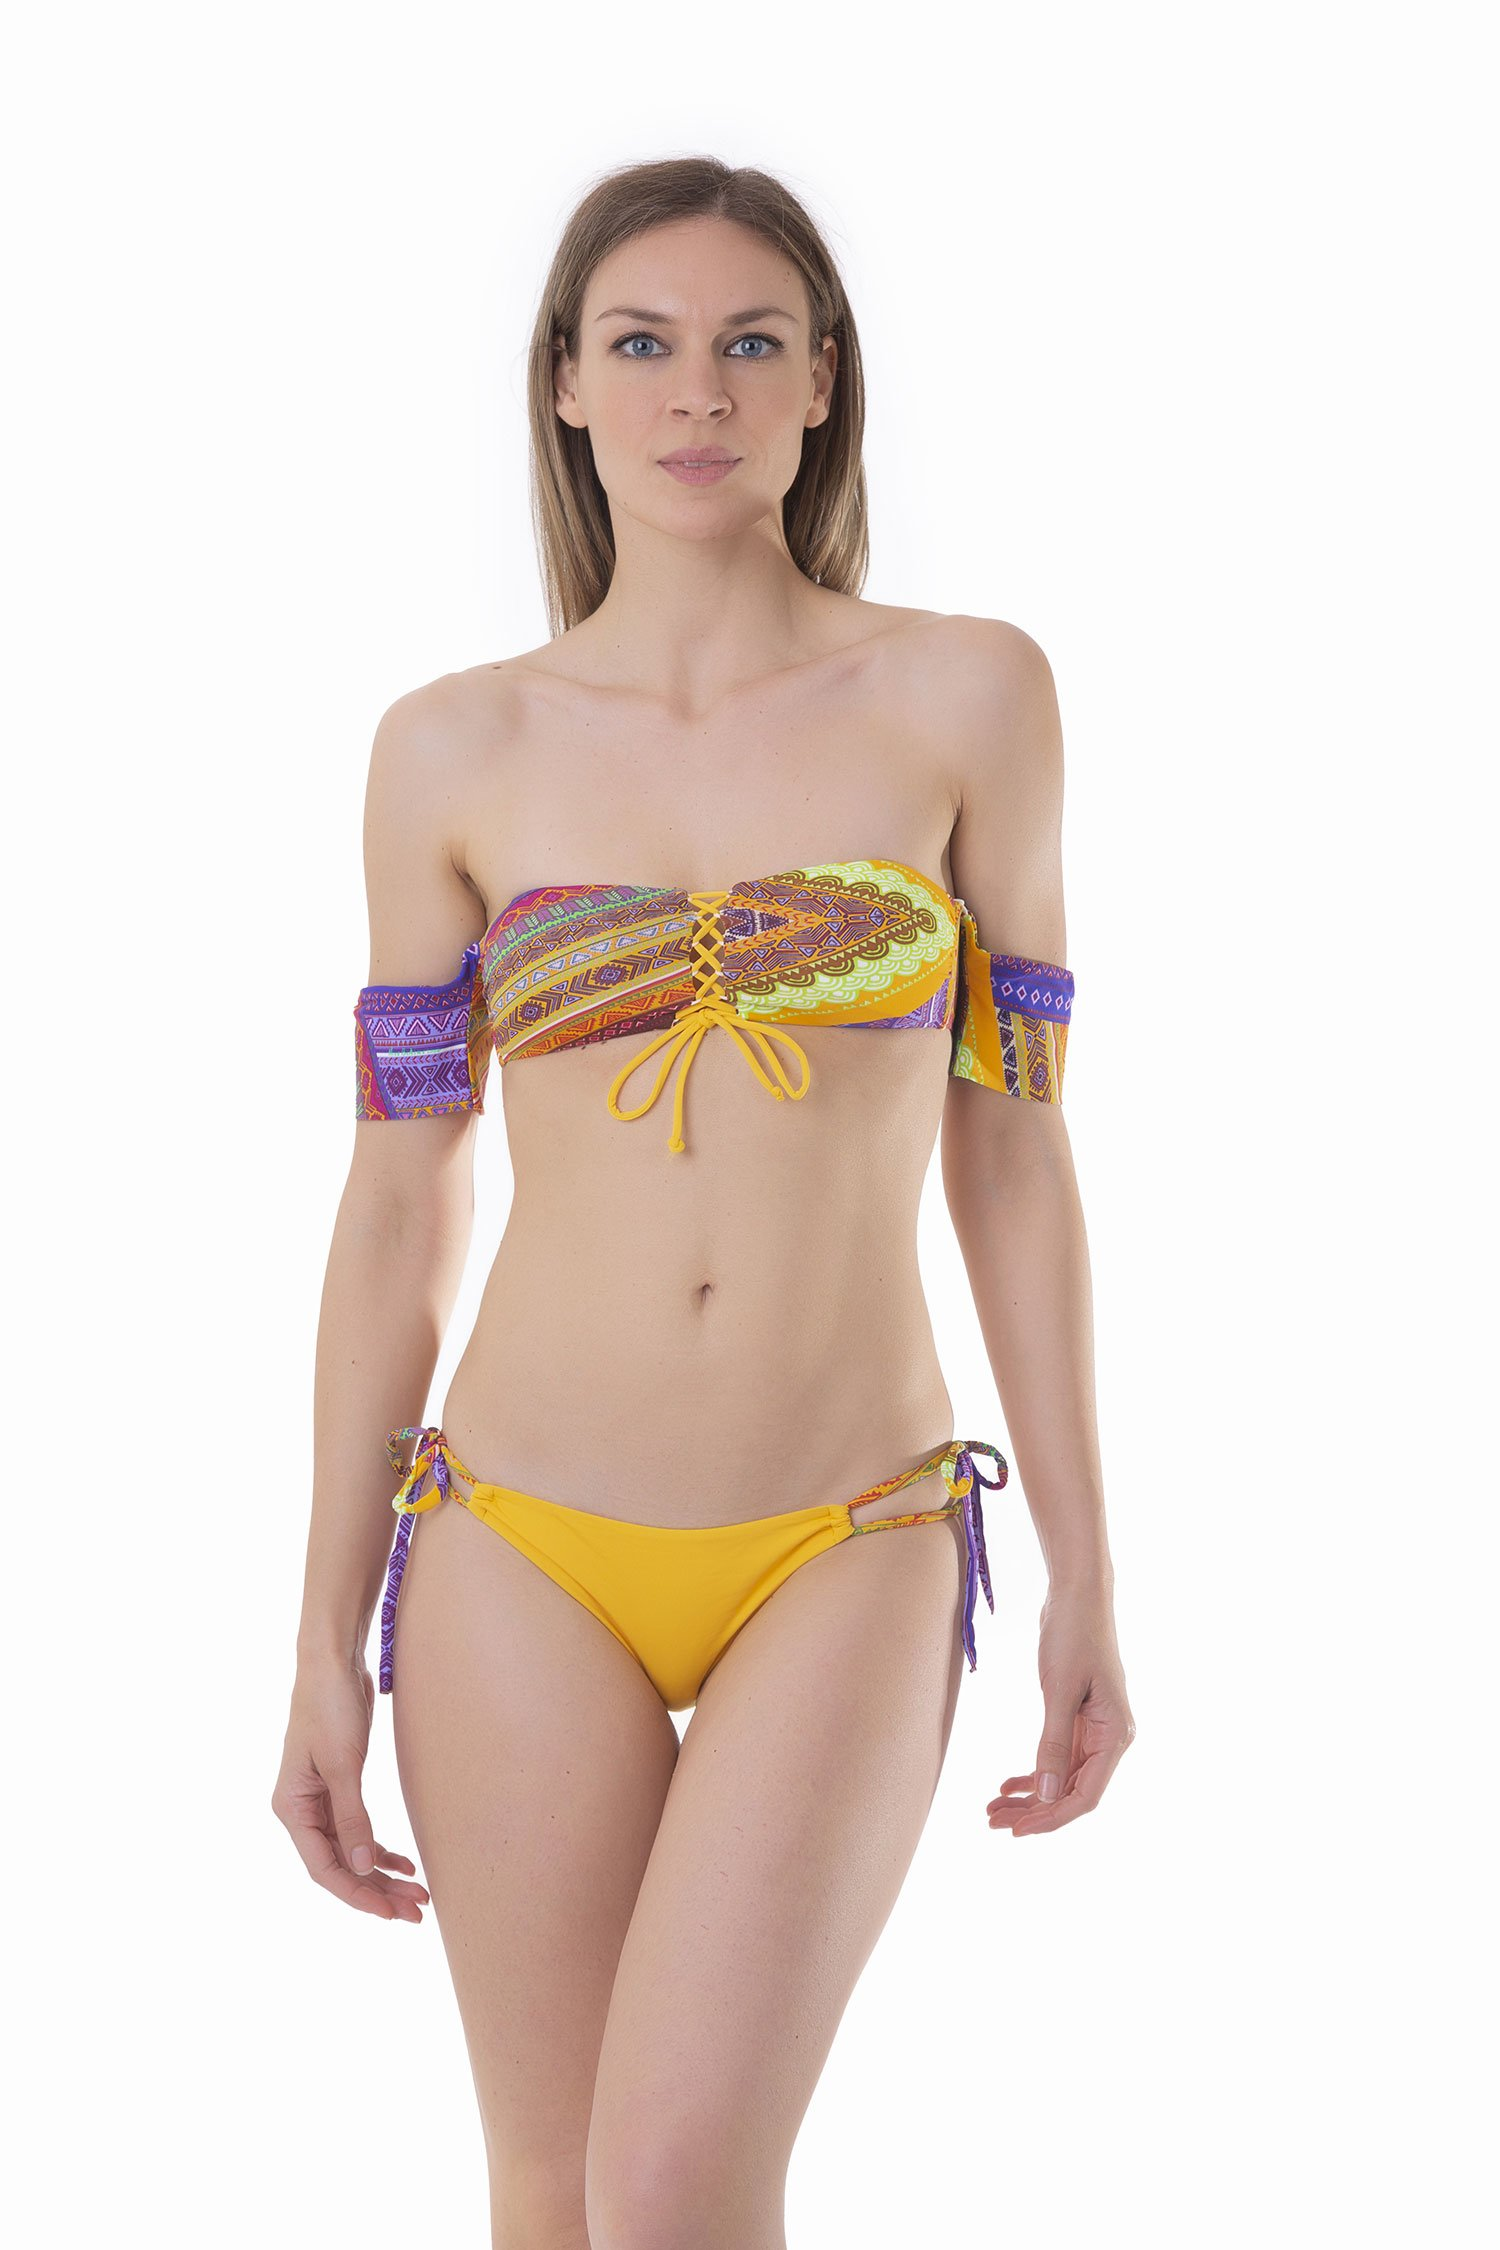 BAND HANDLE BIKINI - Etar+Migi